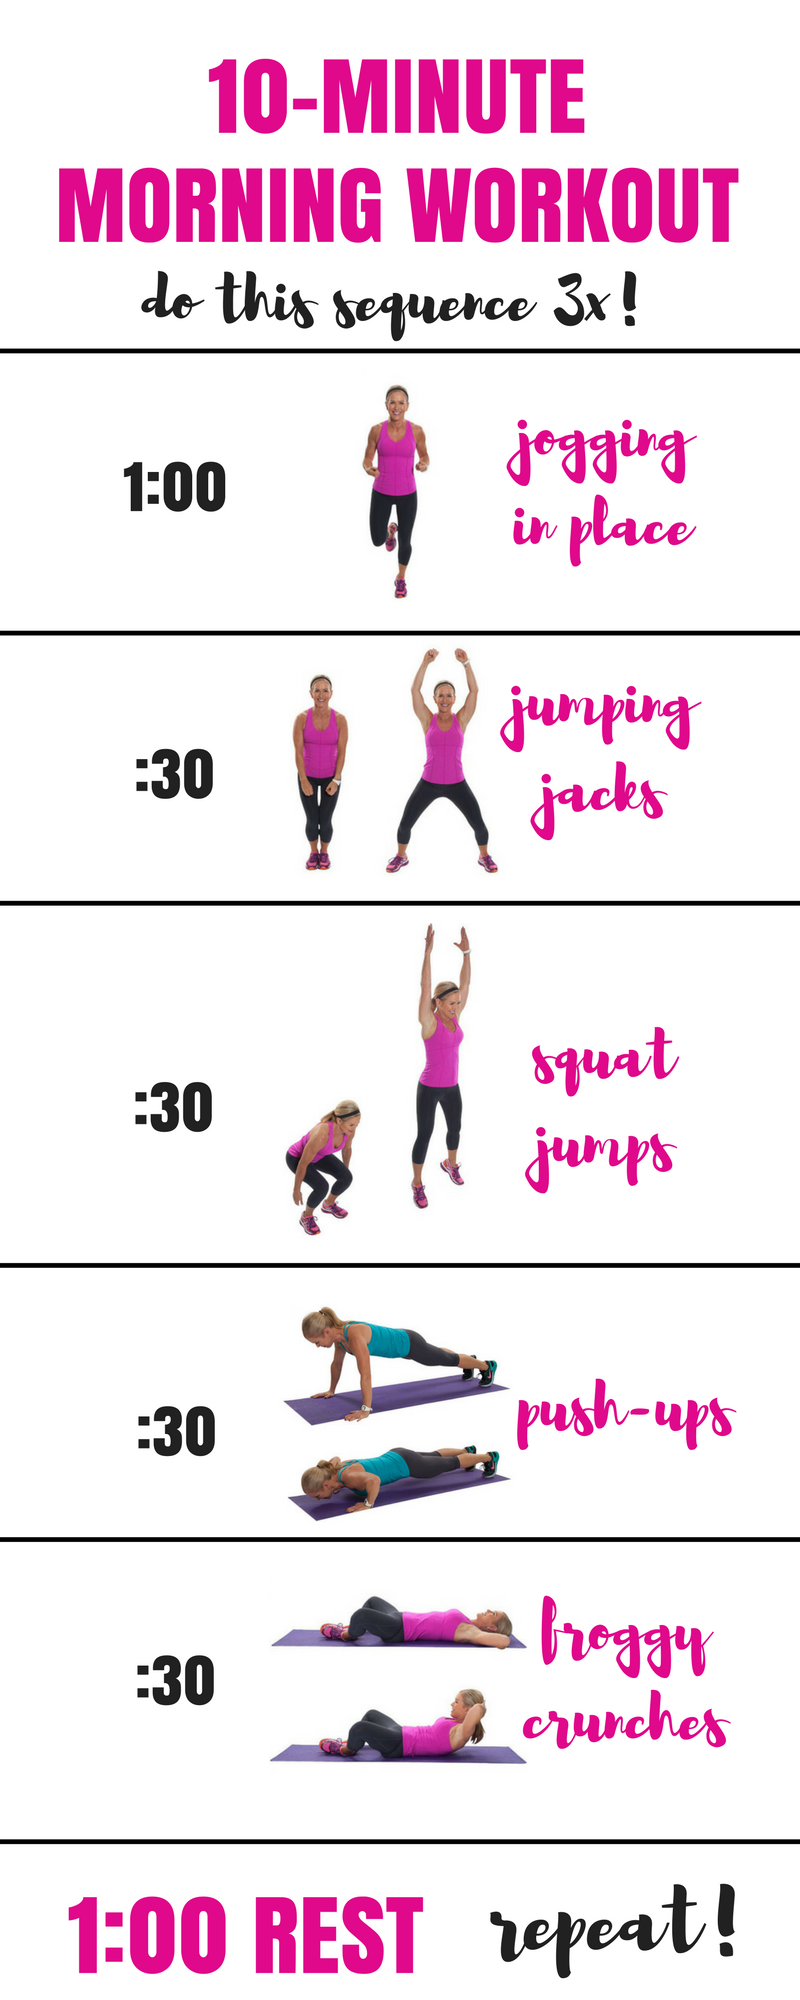 I Track Bites >> 6 Things Healthy Women Over 40 Do Every Morning | exercise ...